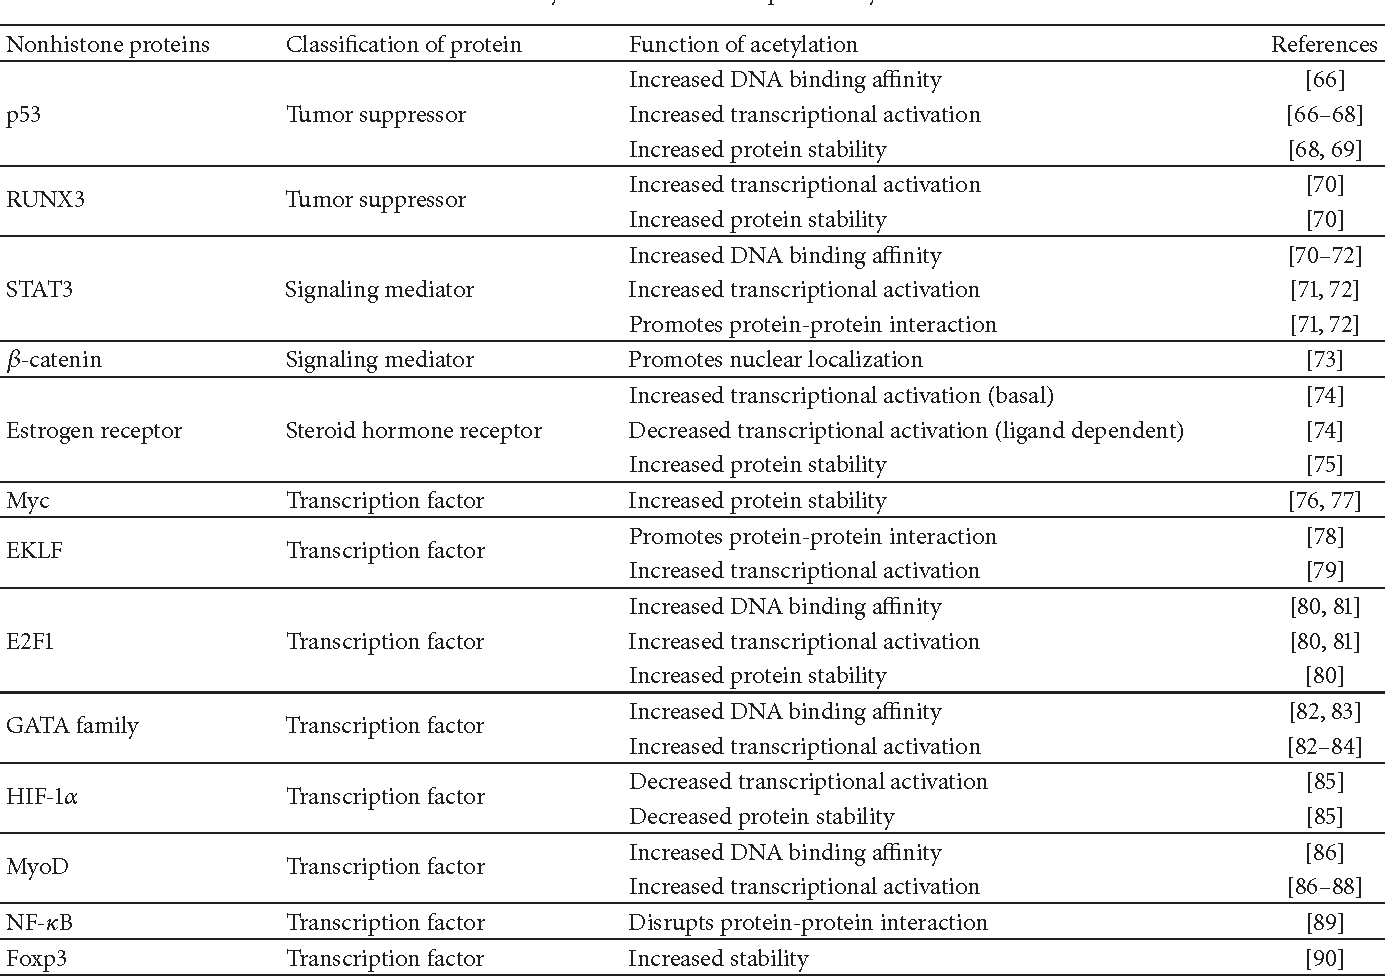 Table 3: Effects of acetylation of nonhistone proteins by HDAC inhibitors.